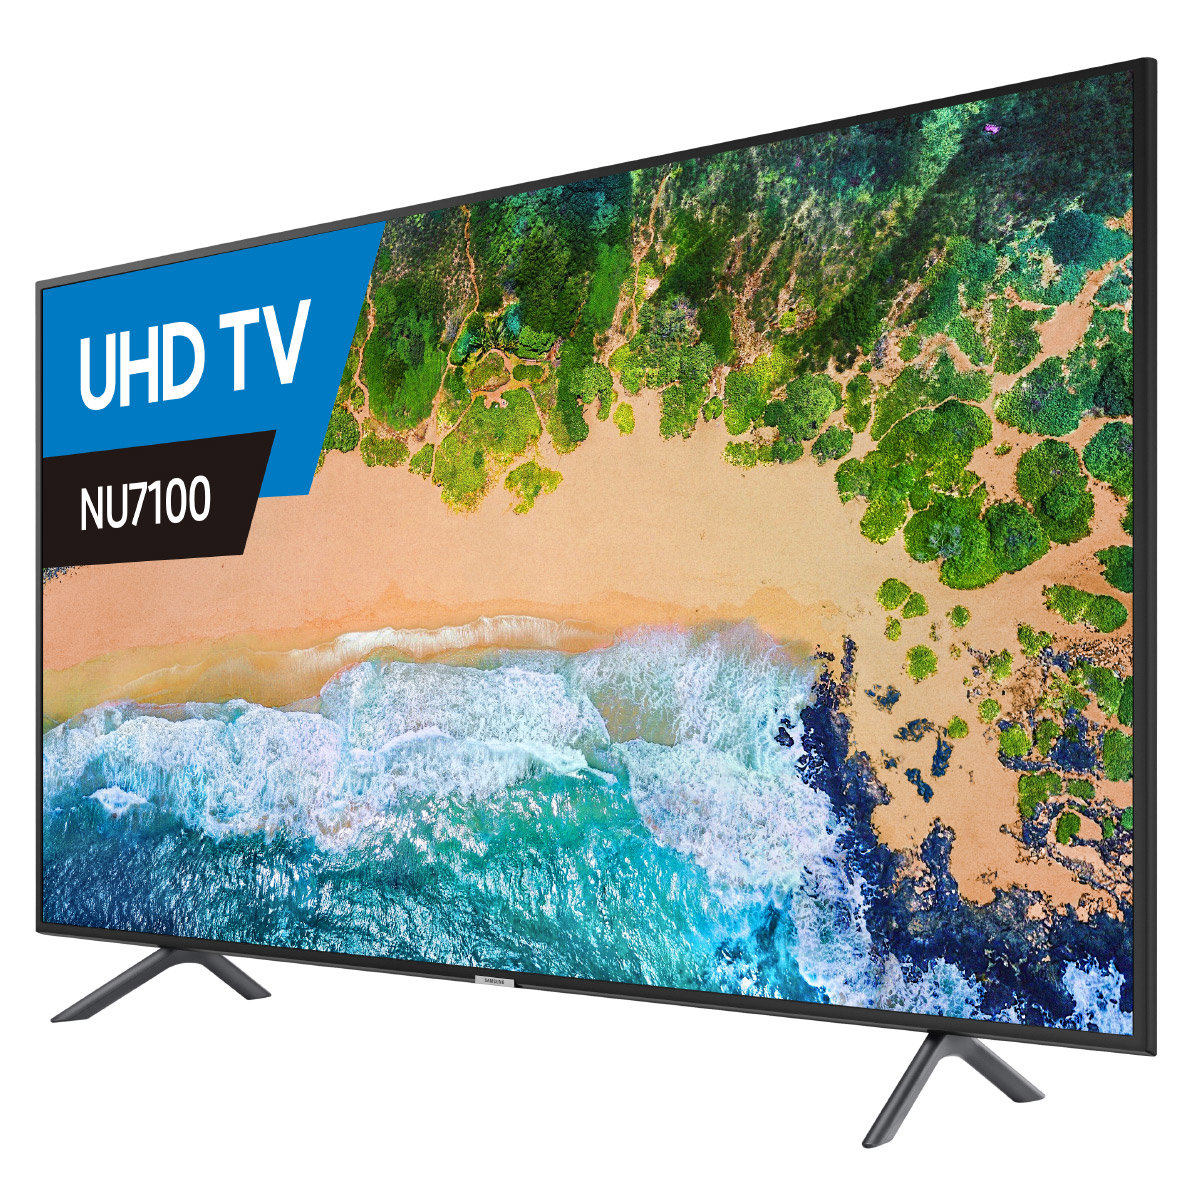 Samsung UA75NU7100 75 Inch 190cm Smart 4K Ultra HD LED LCD TV | Appliances  Online